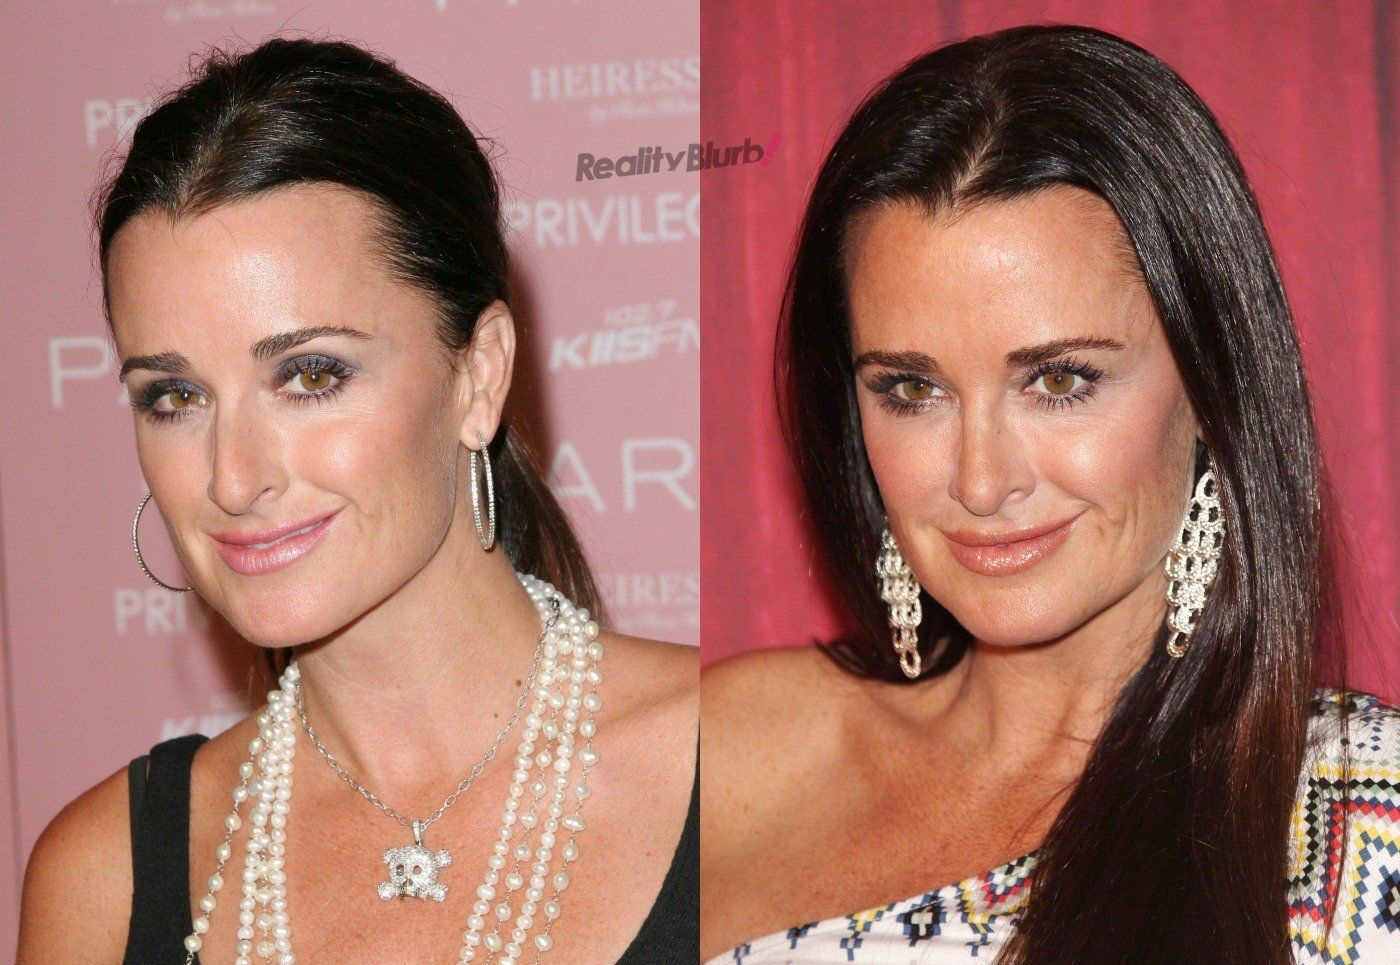 Pin on Kyle richards